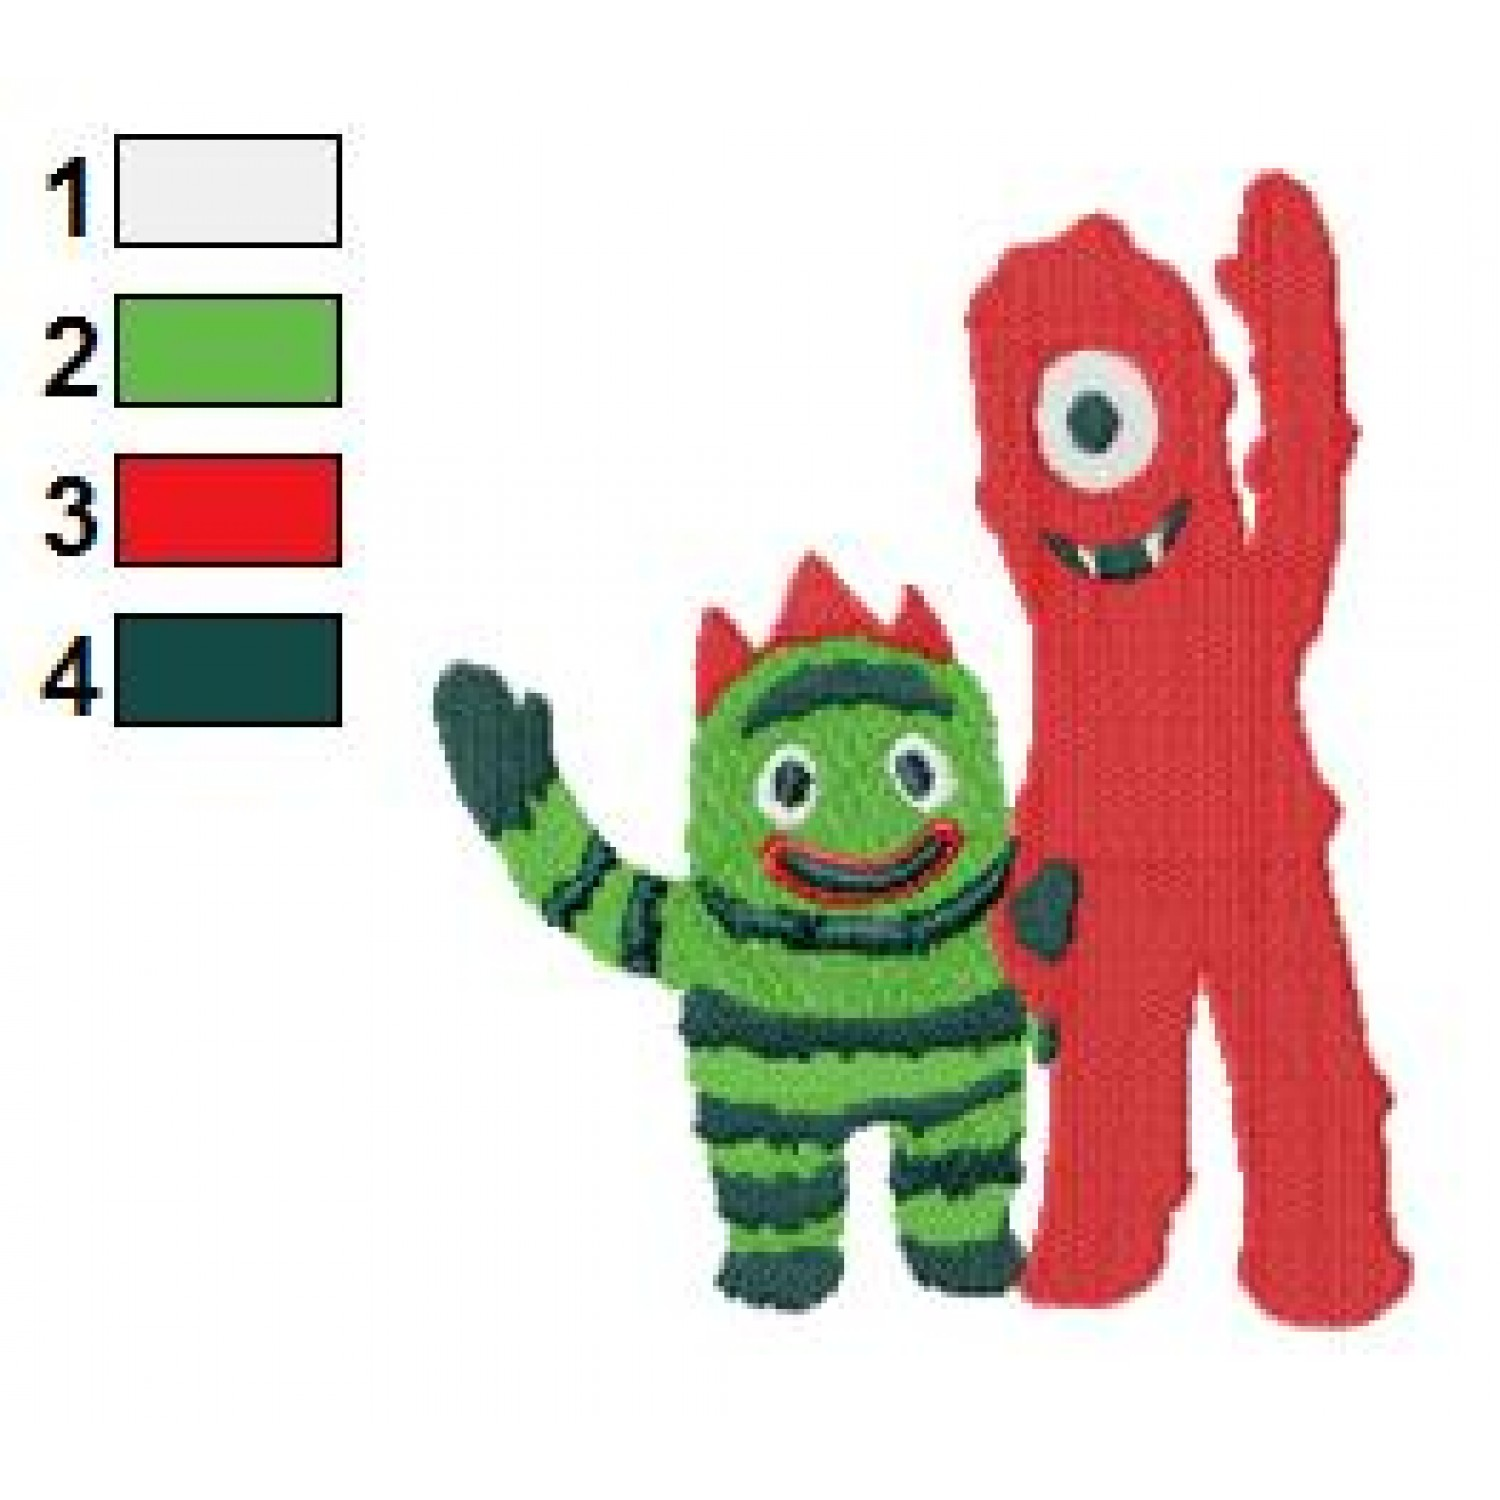 Muno and Brobee Yo Gabba Gabba Embroidery Design